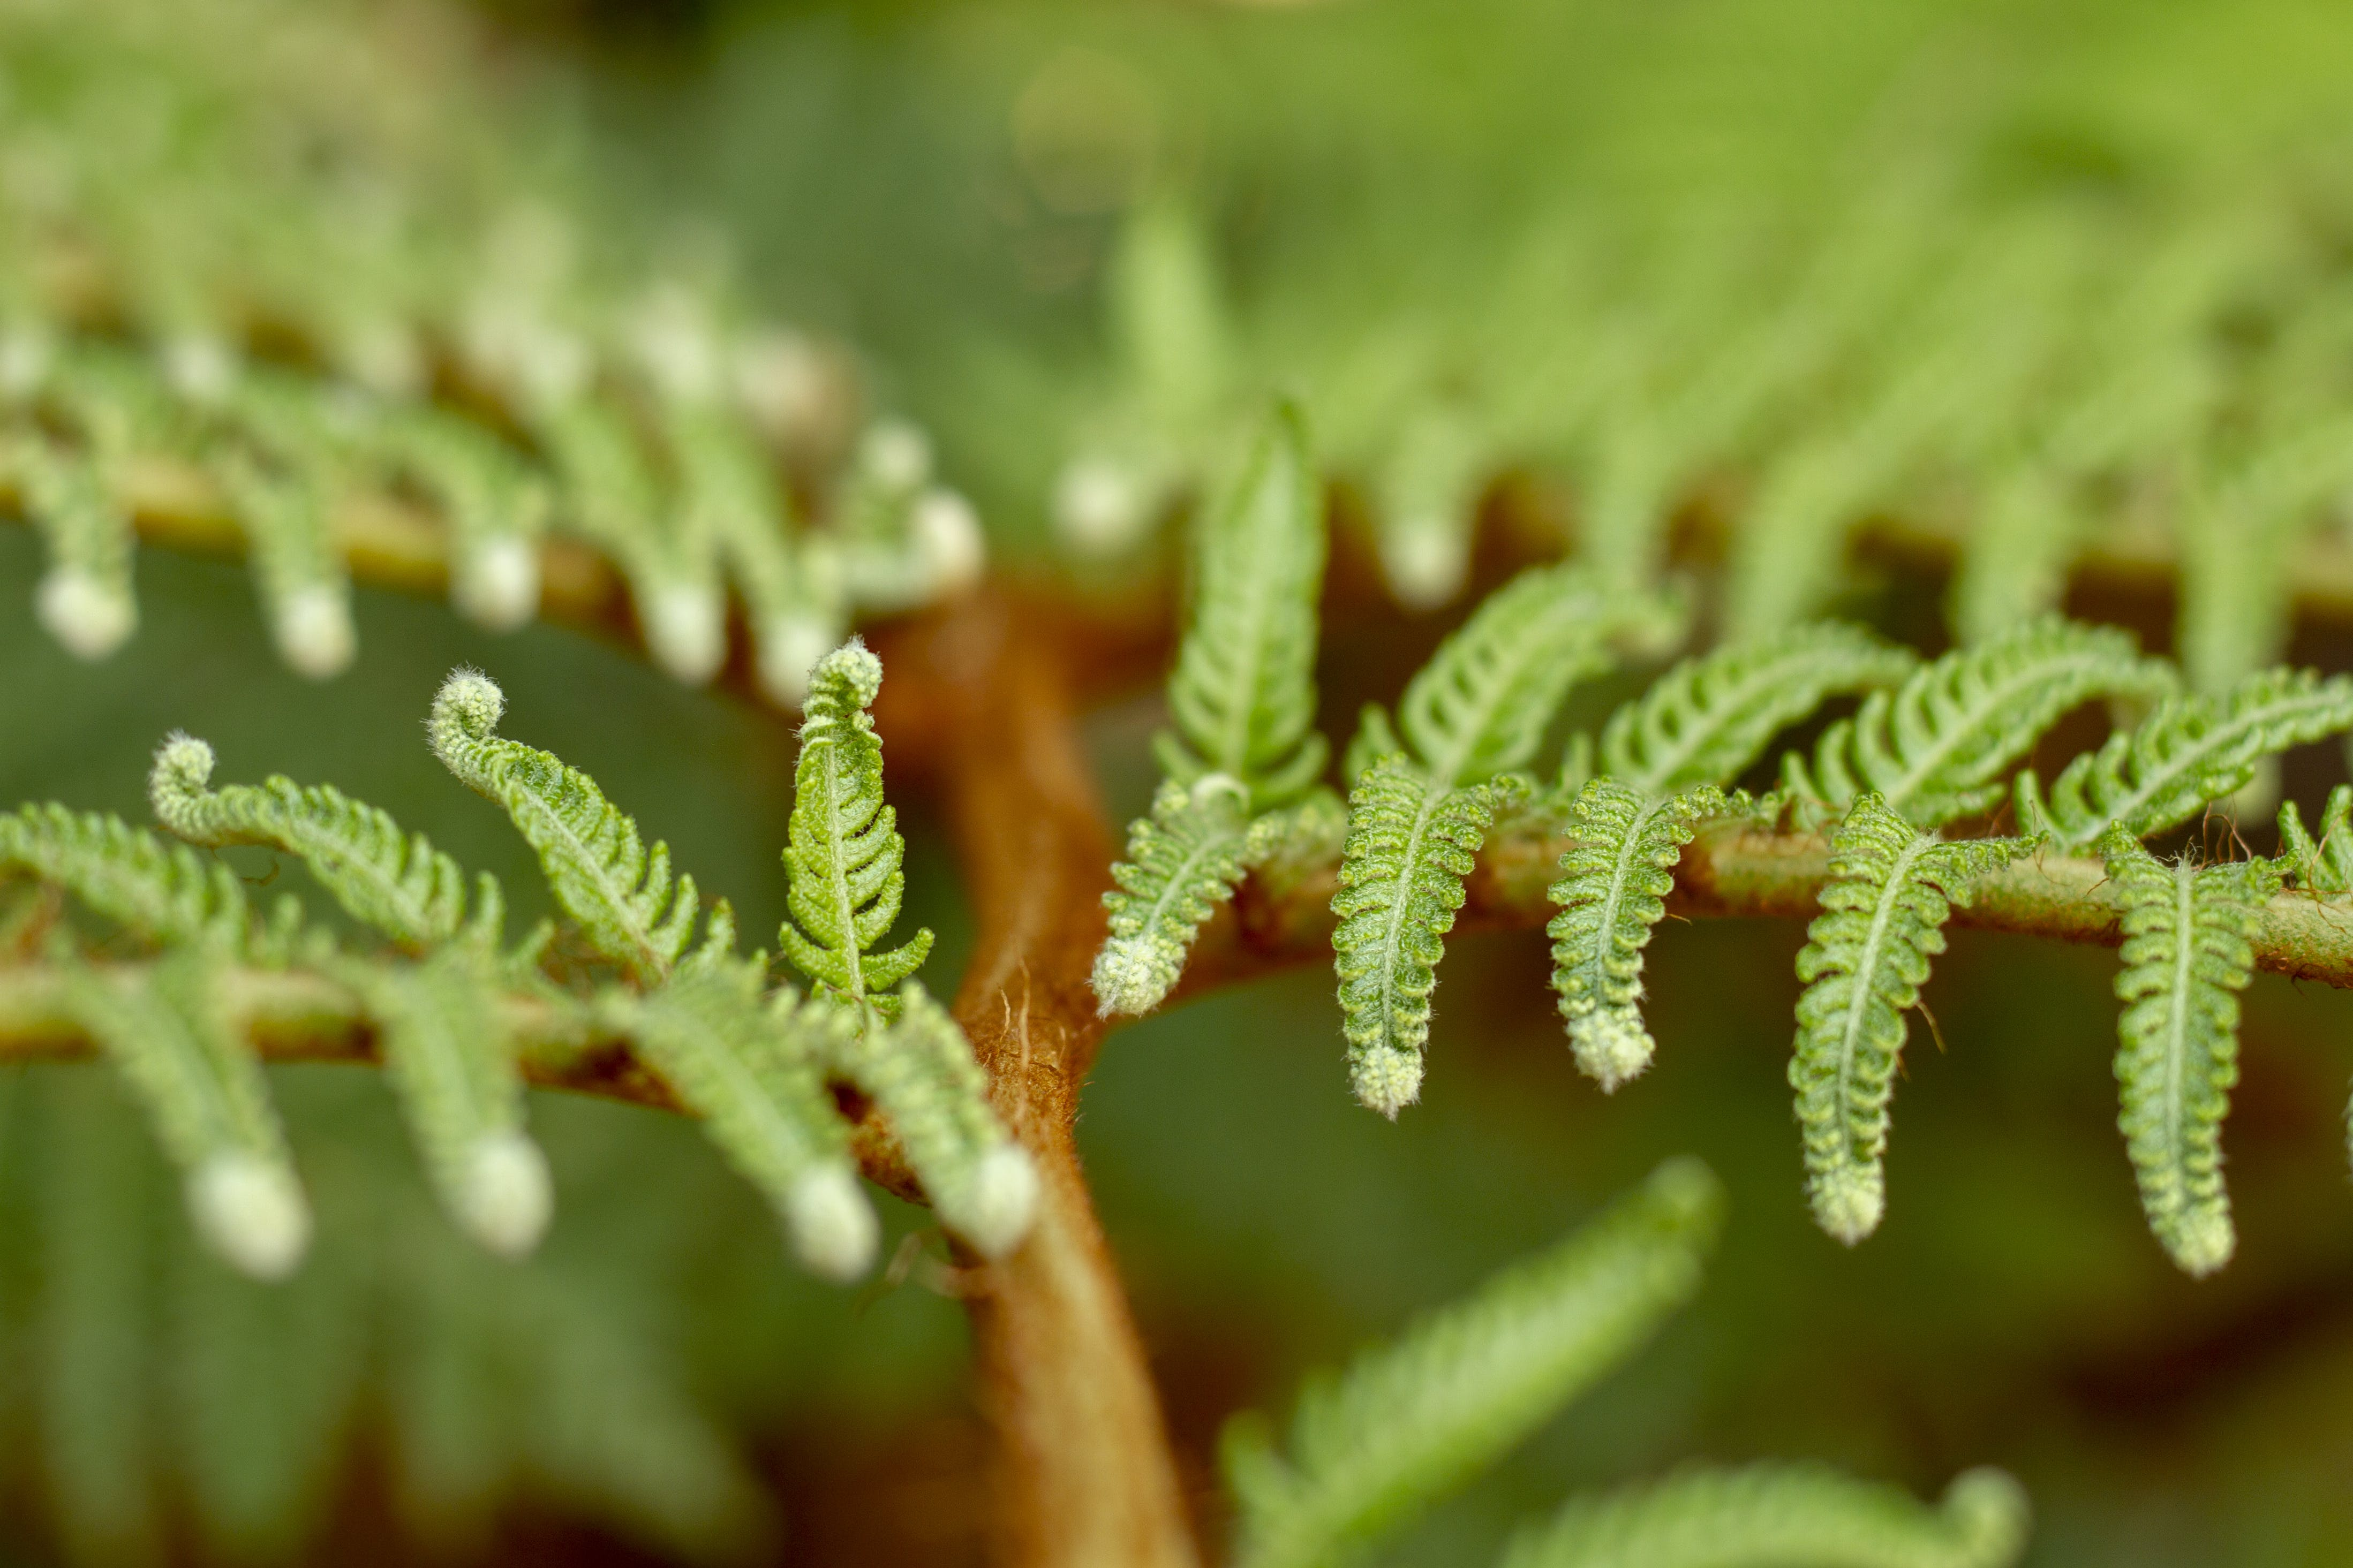 Free stock photo of fern leaves, green leaves